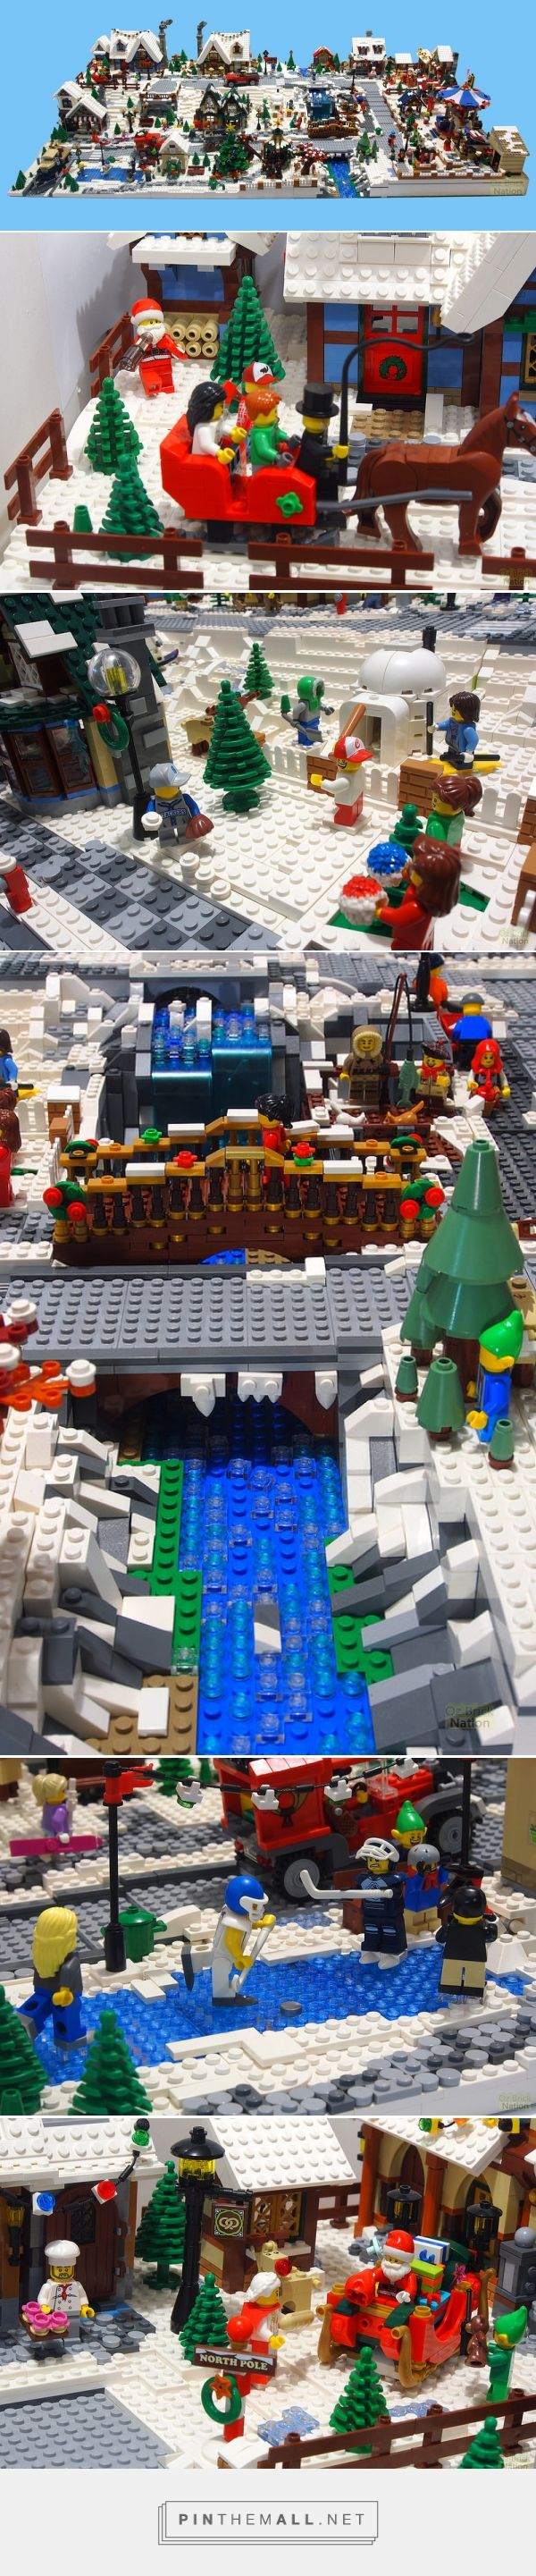 [MOC] Winter Village Display. - LEGO Town - Eurobricks Forums